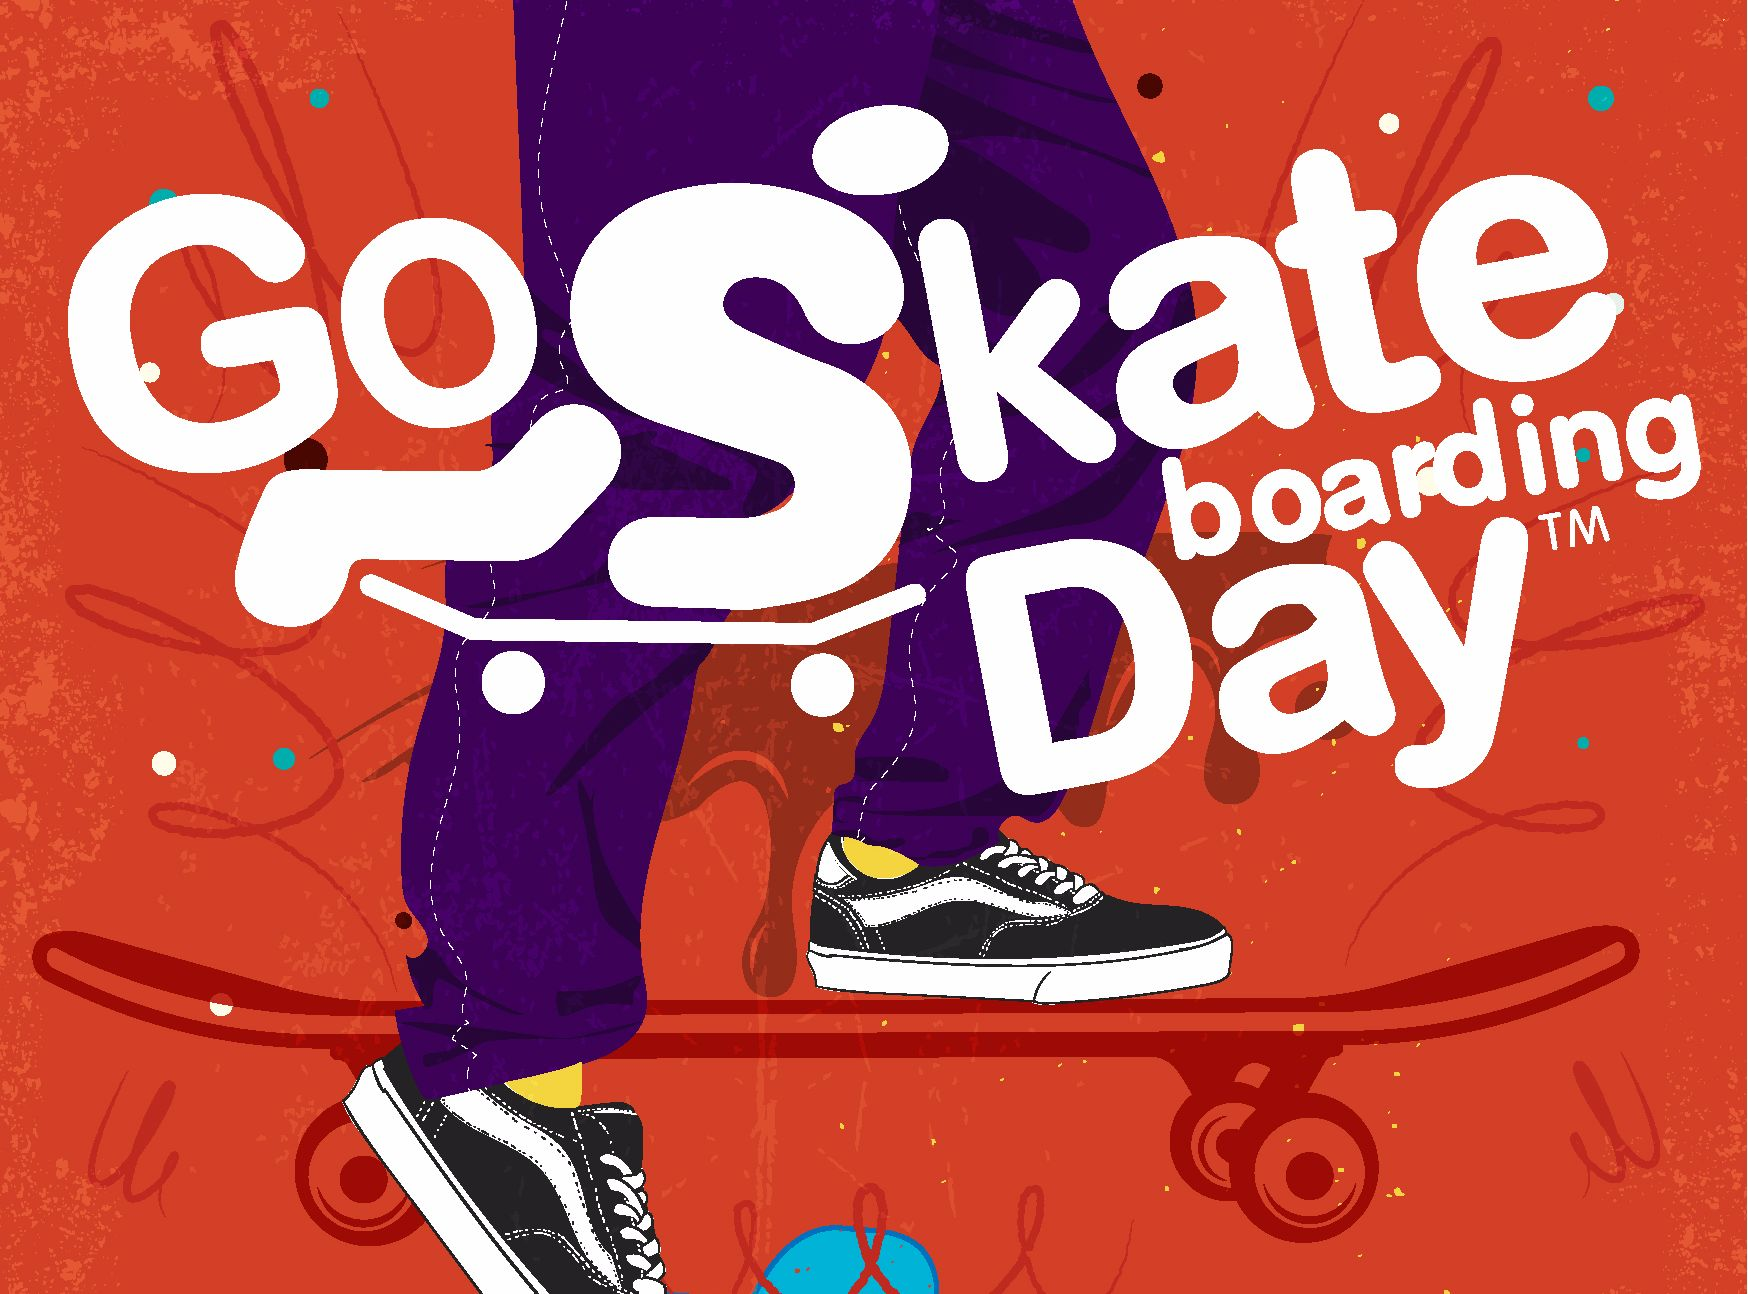 WHAT IS GO SKATEBOARDING DAY?